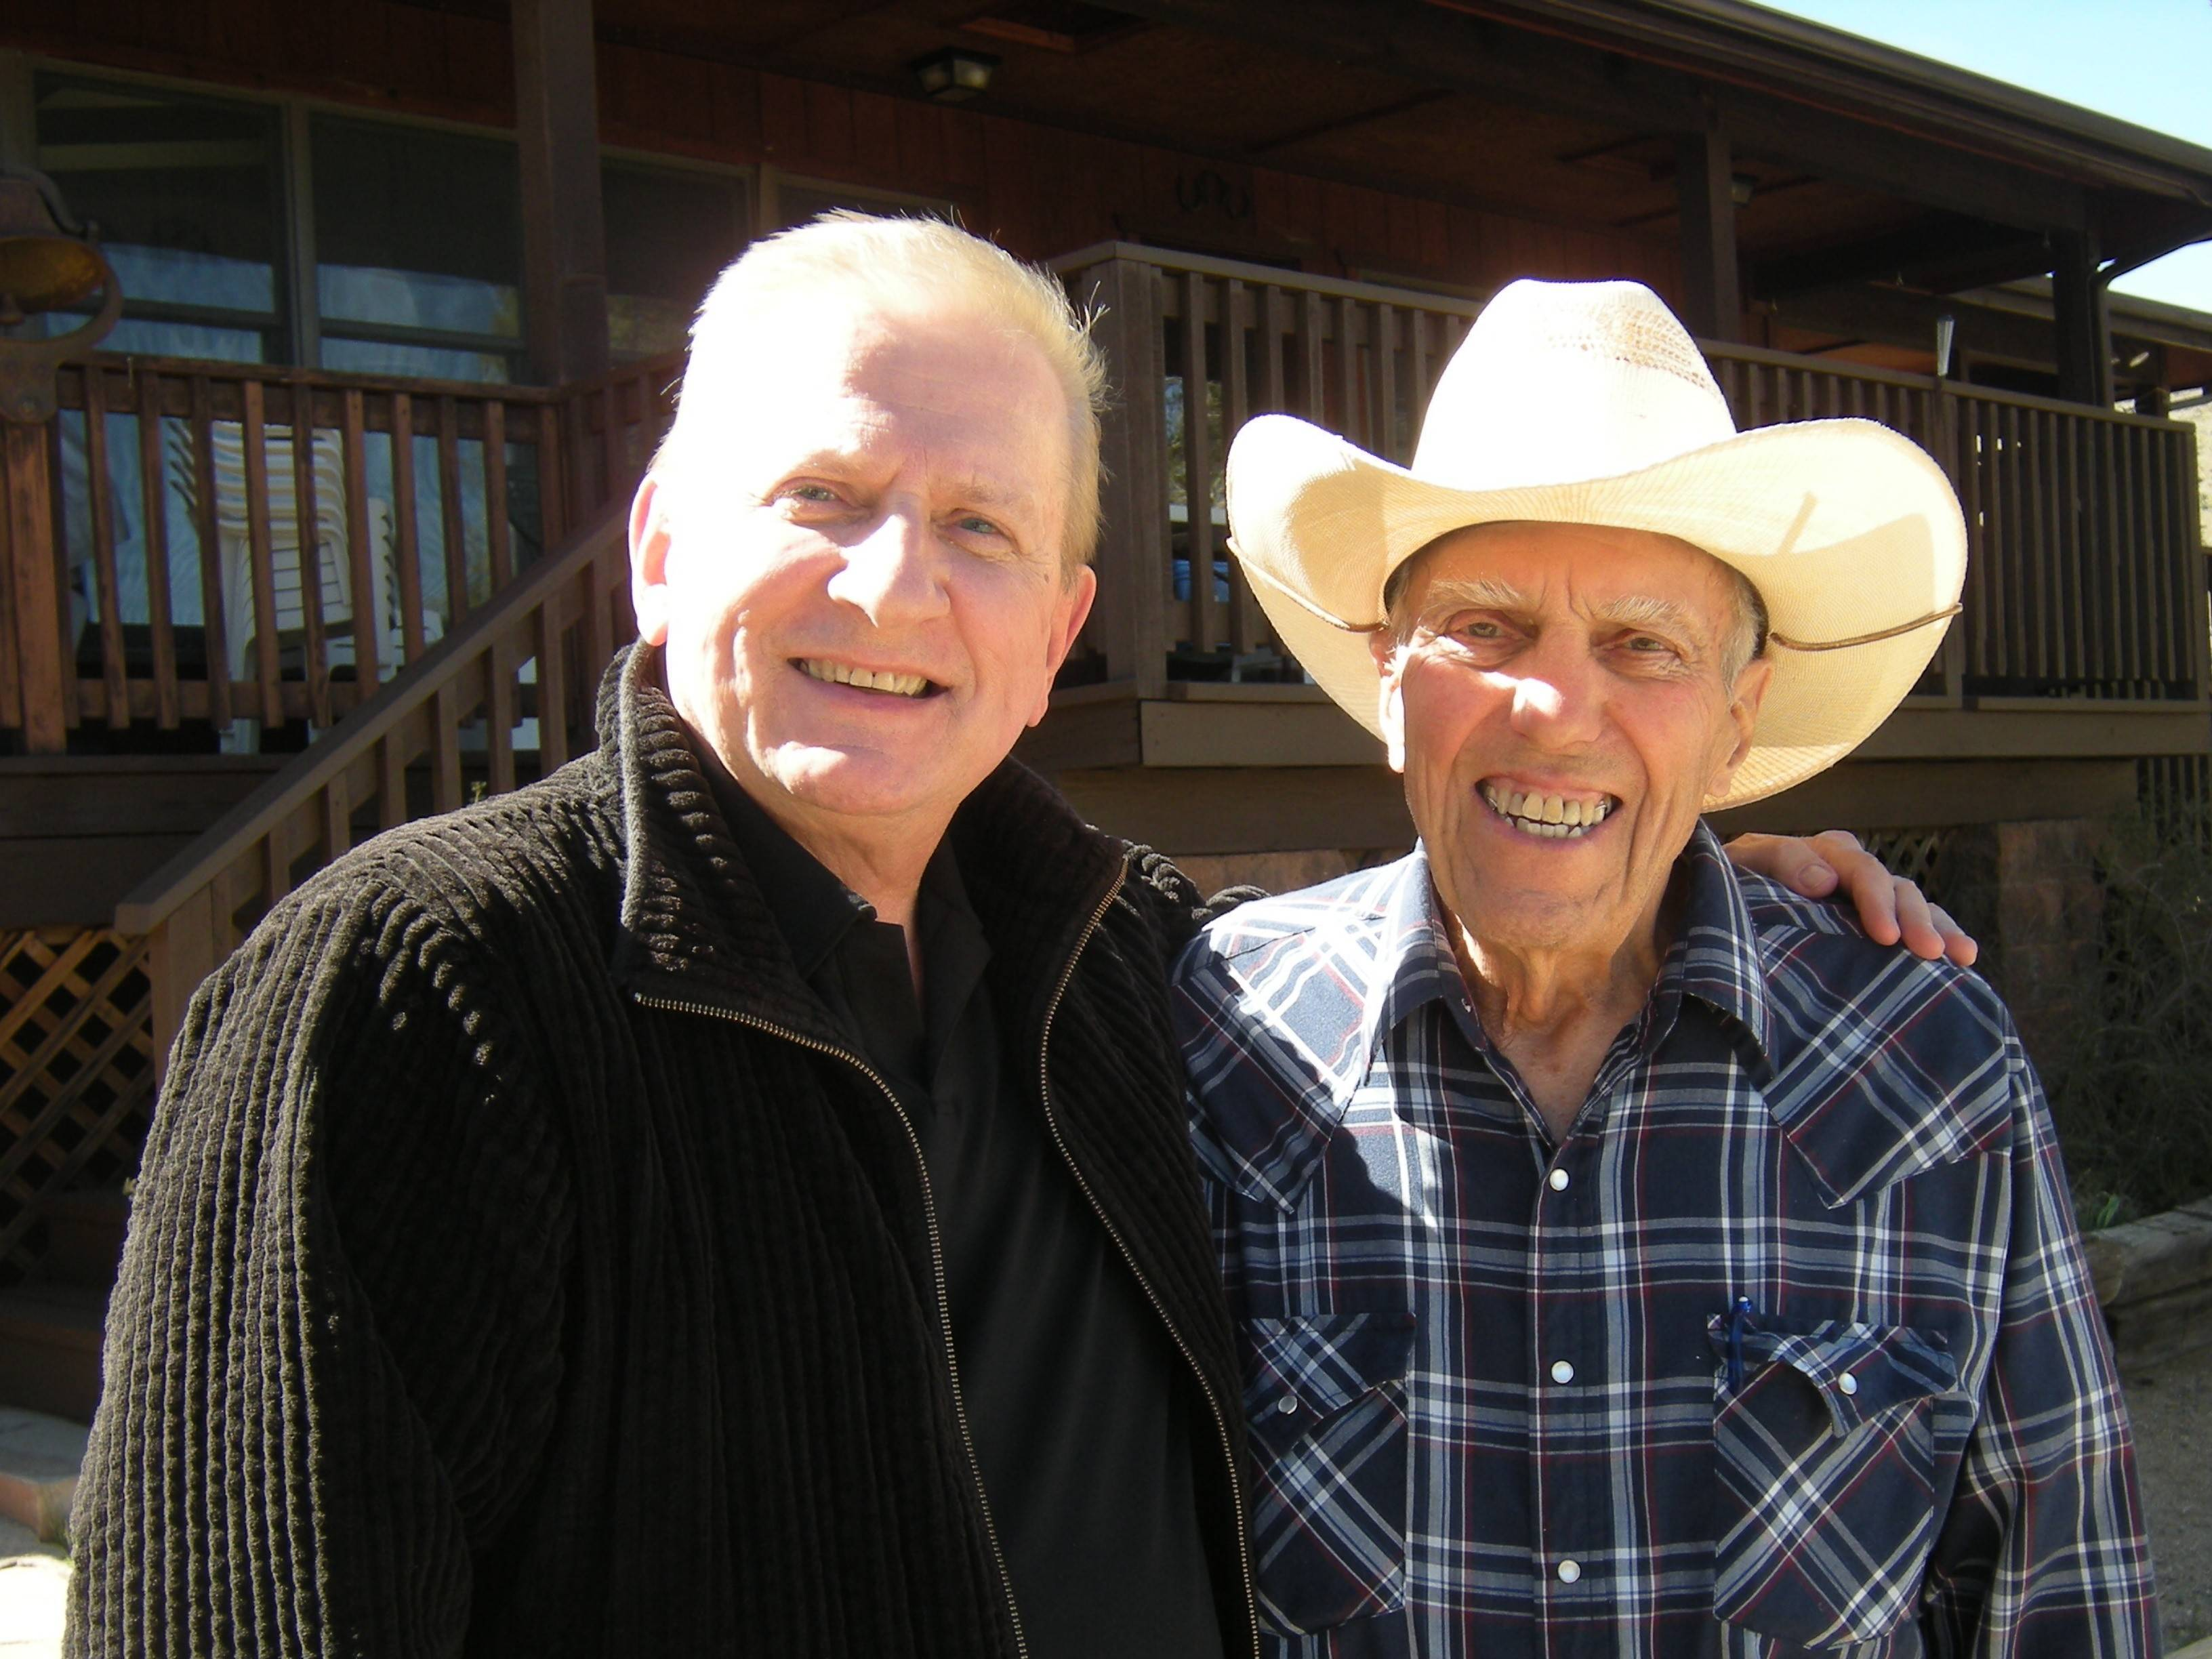 Former Des Plaines Police Chiefs Joseph Kozenczak, right, and Lee Alfano, pictured on Alfano's Arizona ranch in 2011, were two of the major forces behind the John Wayne Gacy investigation in 1978. Alfano died Wednesday at age 92. Kozenczak died last year at 75.